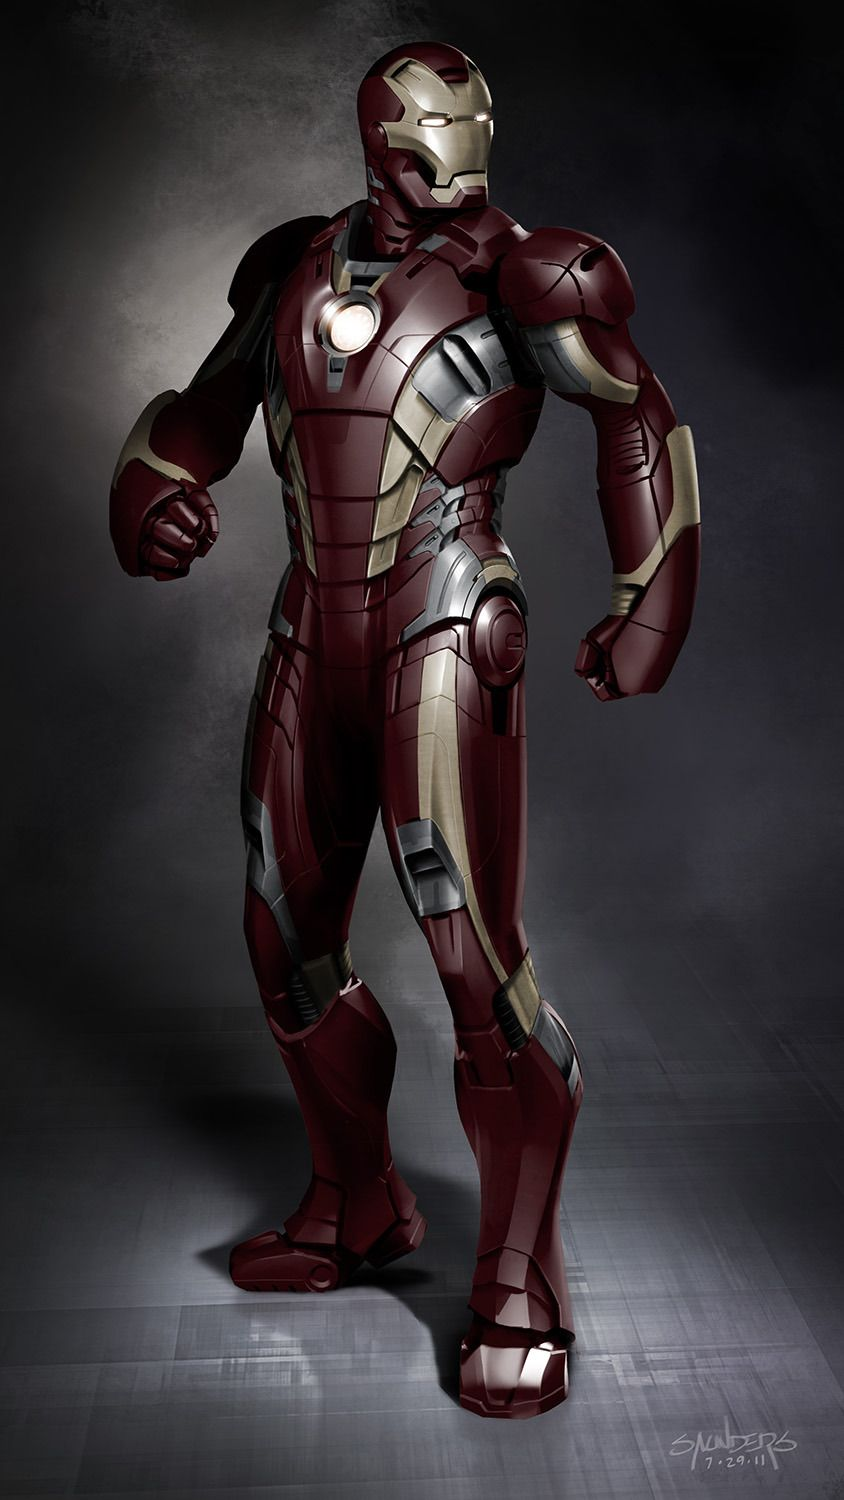 Track Suit Early Mark 42 Concept Iron Man 3 Concept Art By Phil Saunders Iron Man Iron Man Suit Iron Man Armor